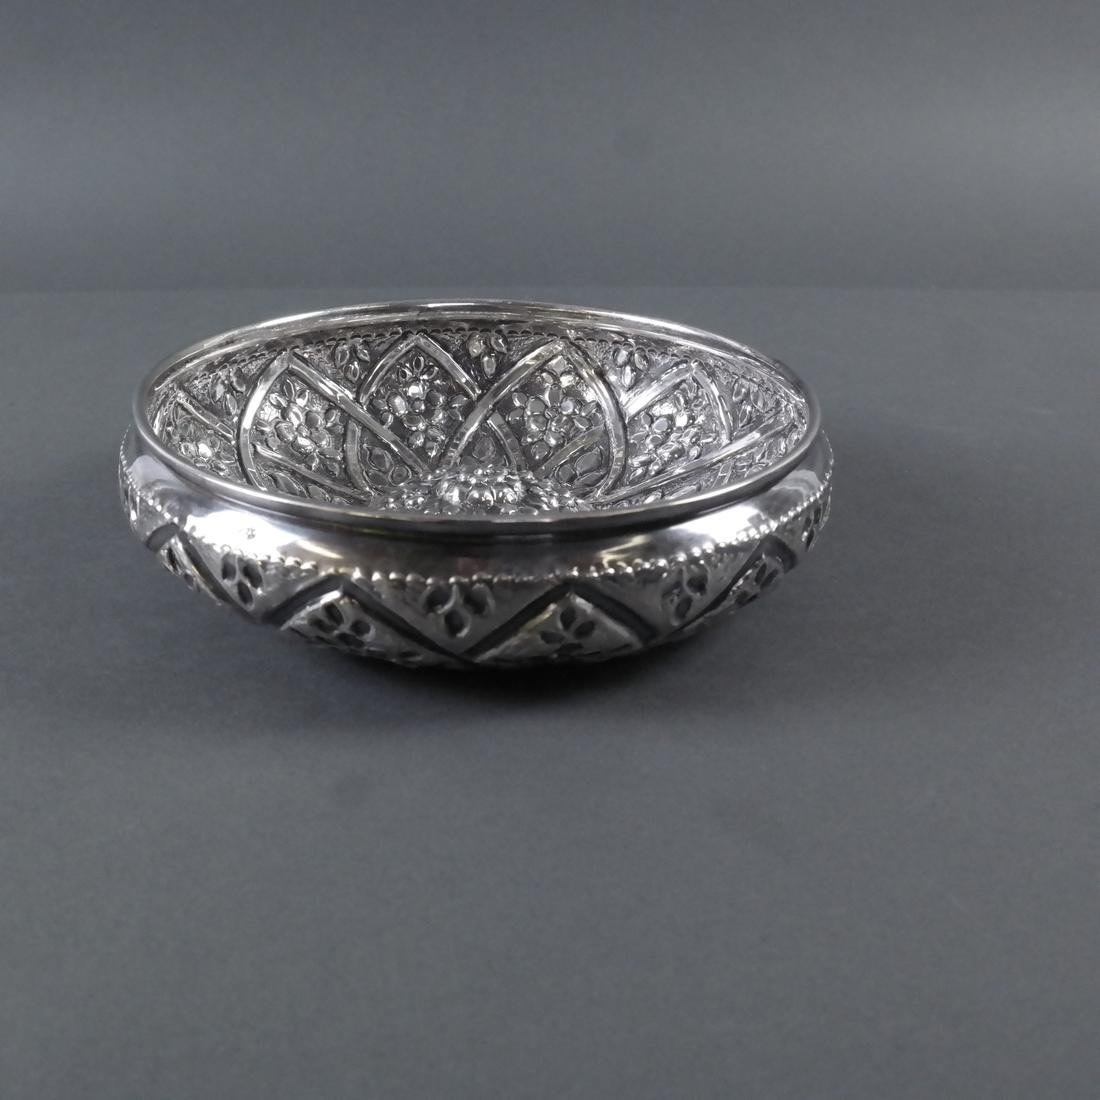 .900 Standard Silver Decorated Bowl